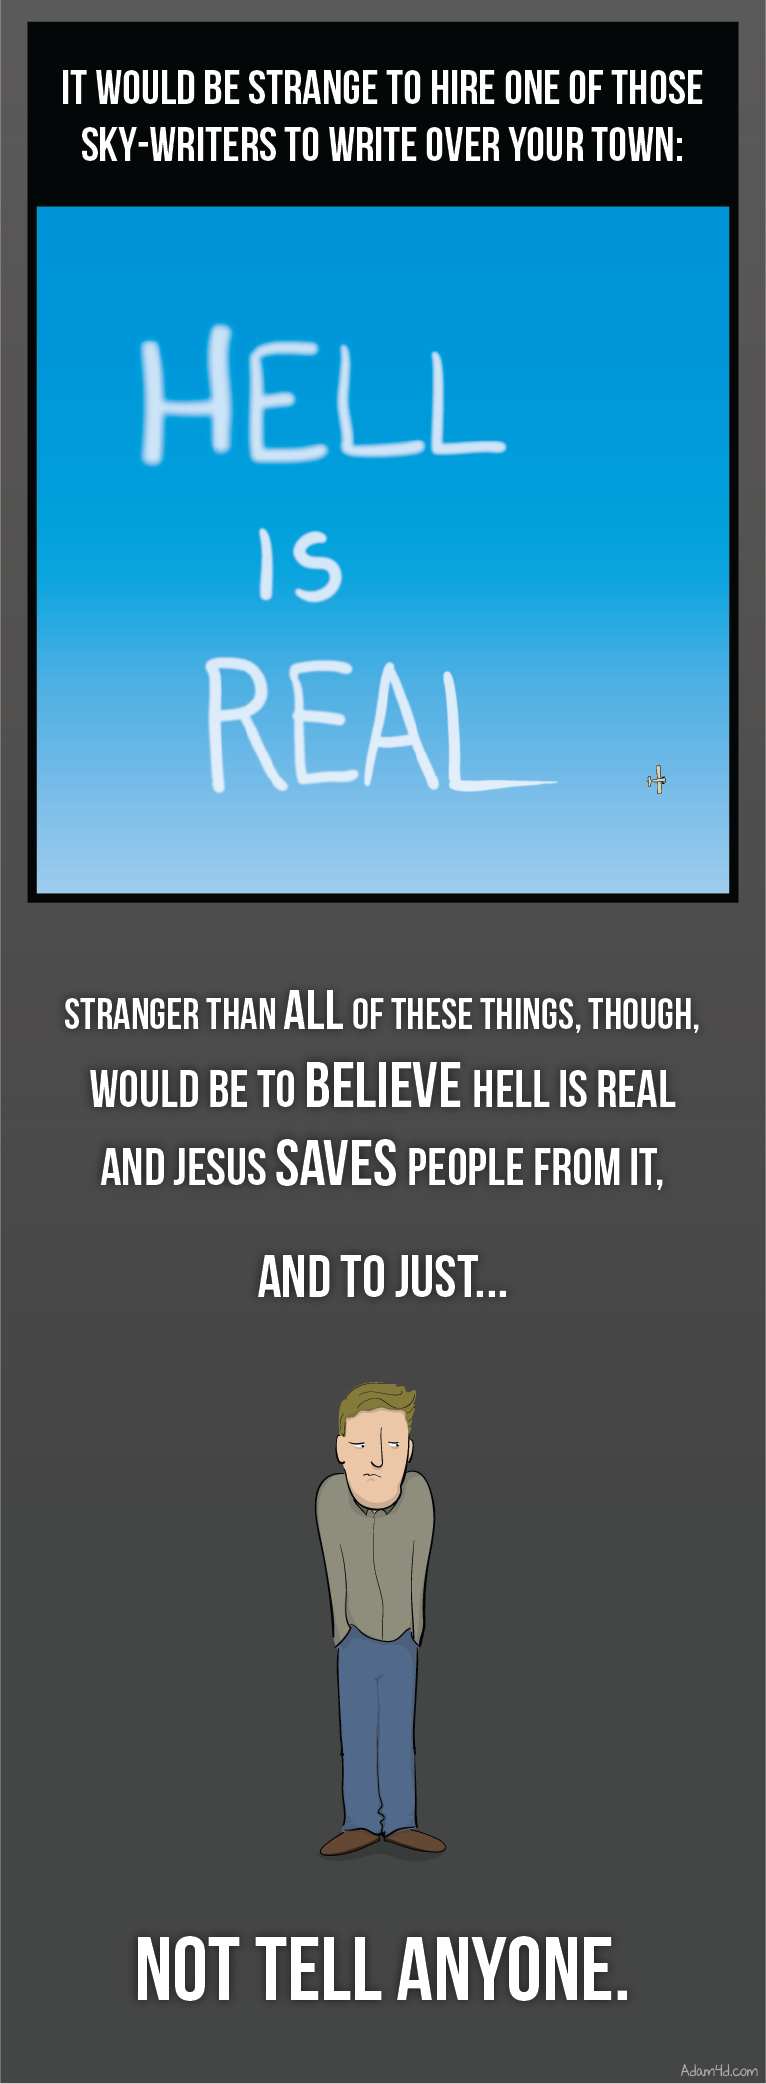 Next in line: believing there's any real biblical case for its nonexistence